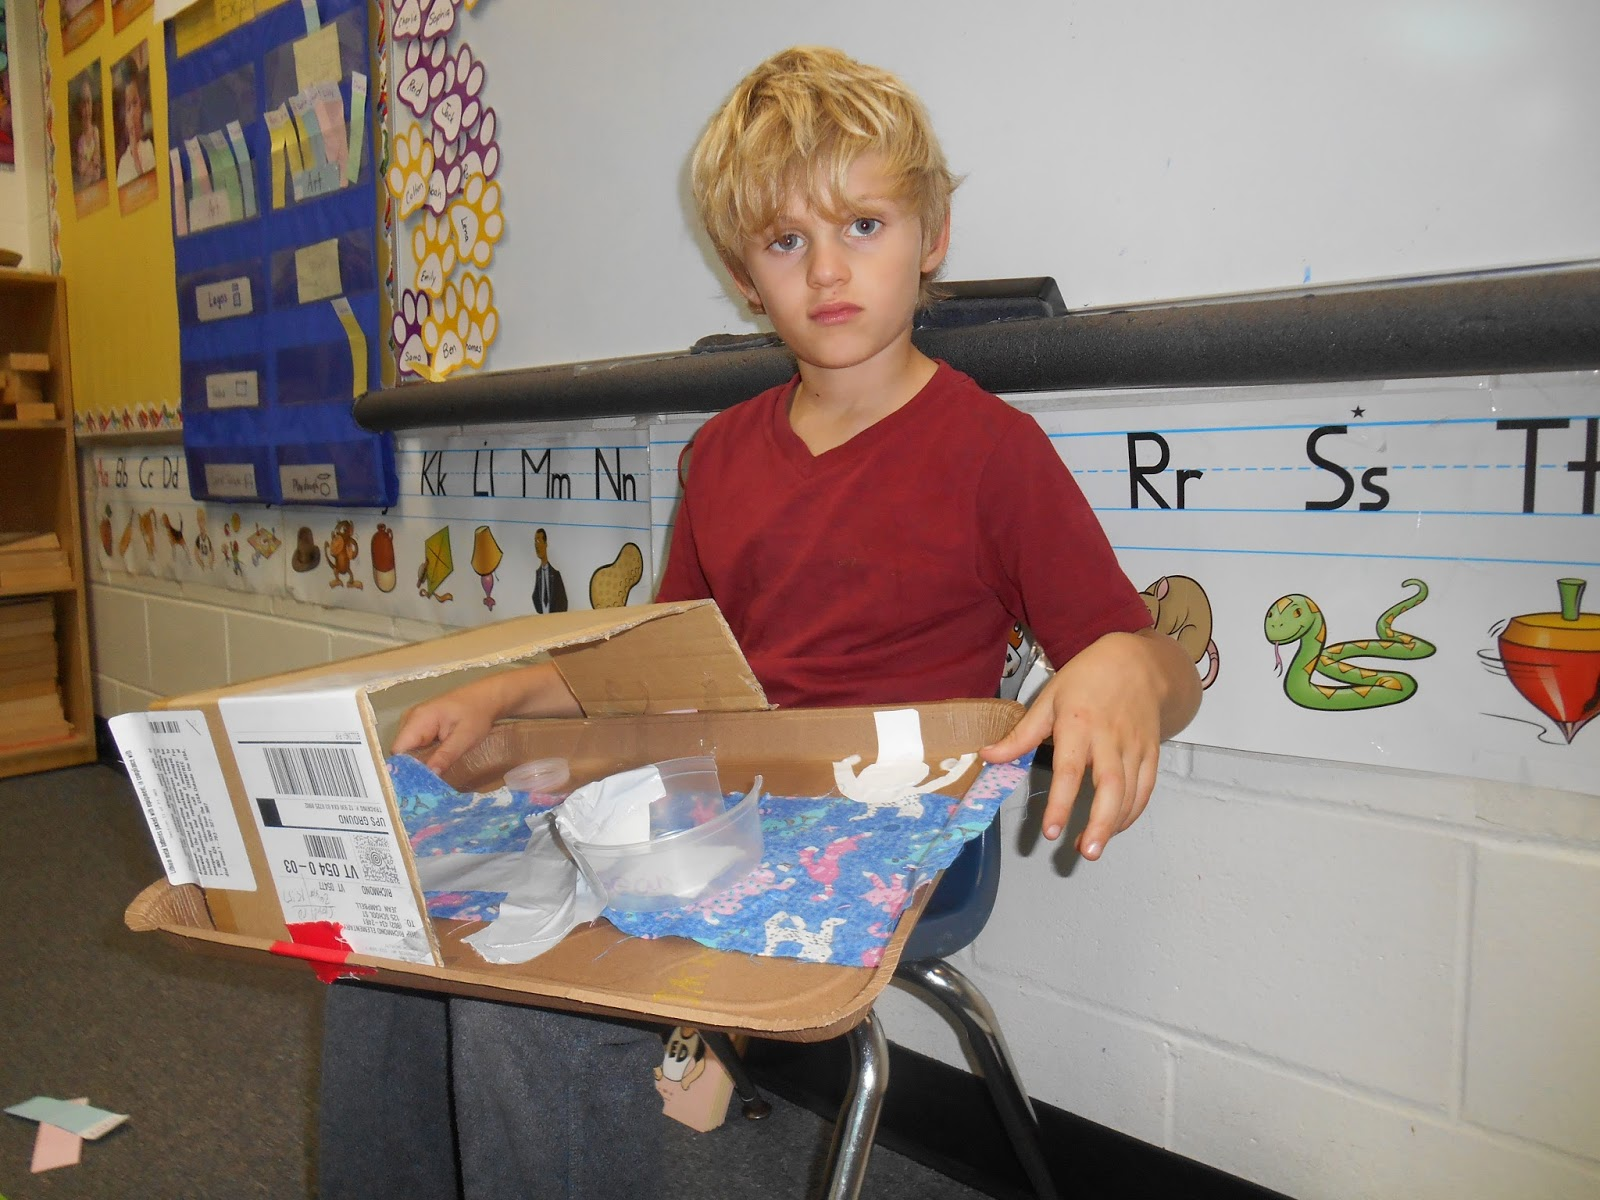 kindergarten science fair projects Kindergarten science projects give kindergarten students the opportunity to explore science by making observations and predictions.